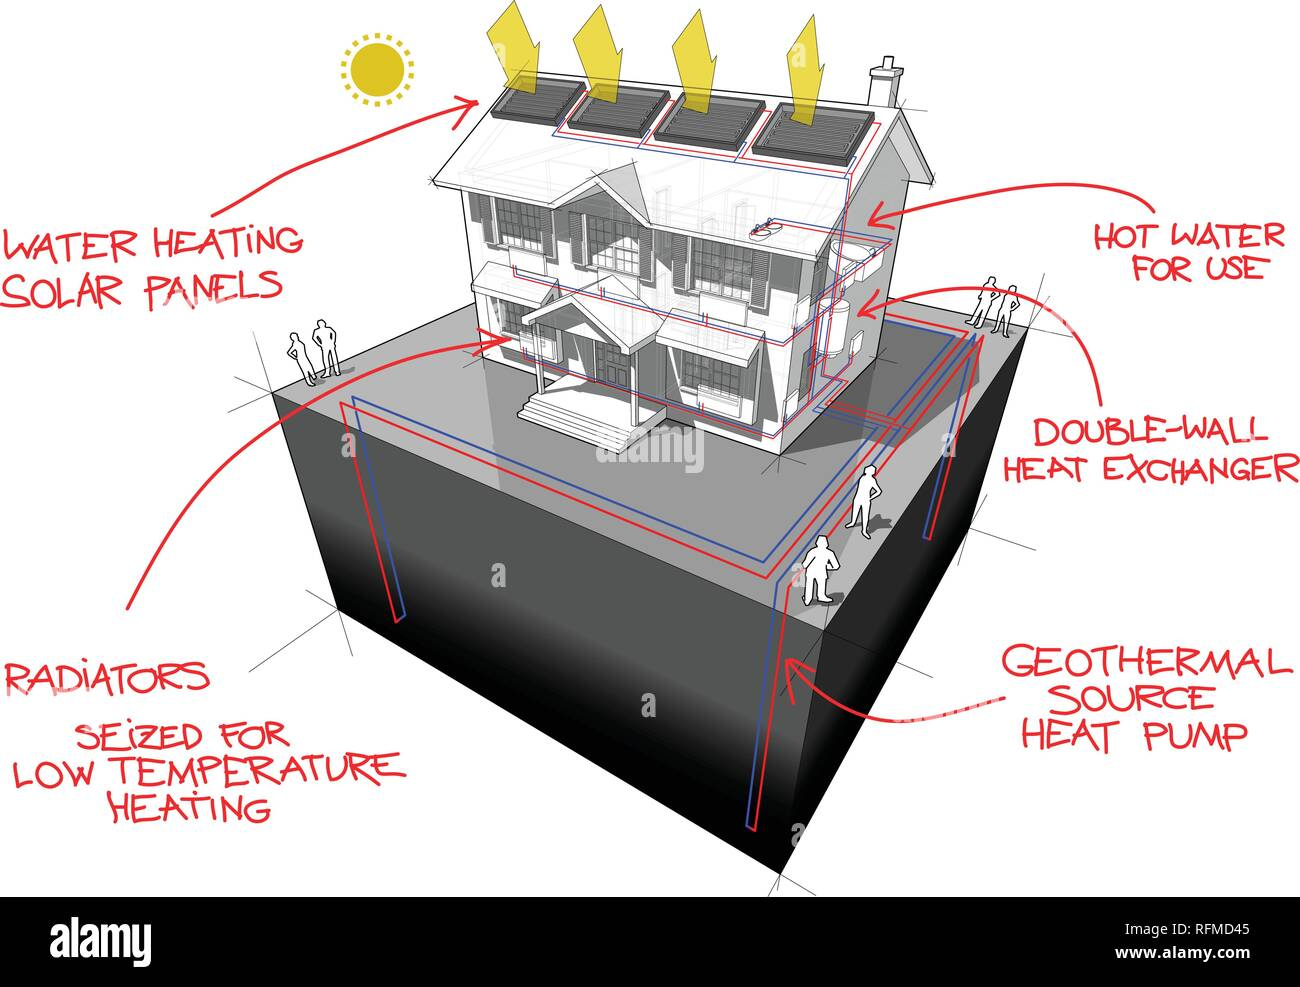 diagram of a classic colonial house with ground source heat pump with 4 wells as source of energy and solar panels on the roof for heating and radiato - Stock Vector